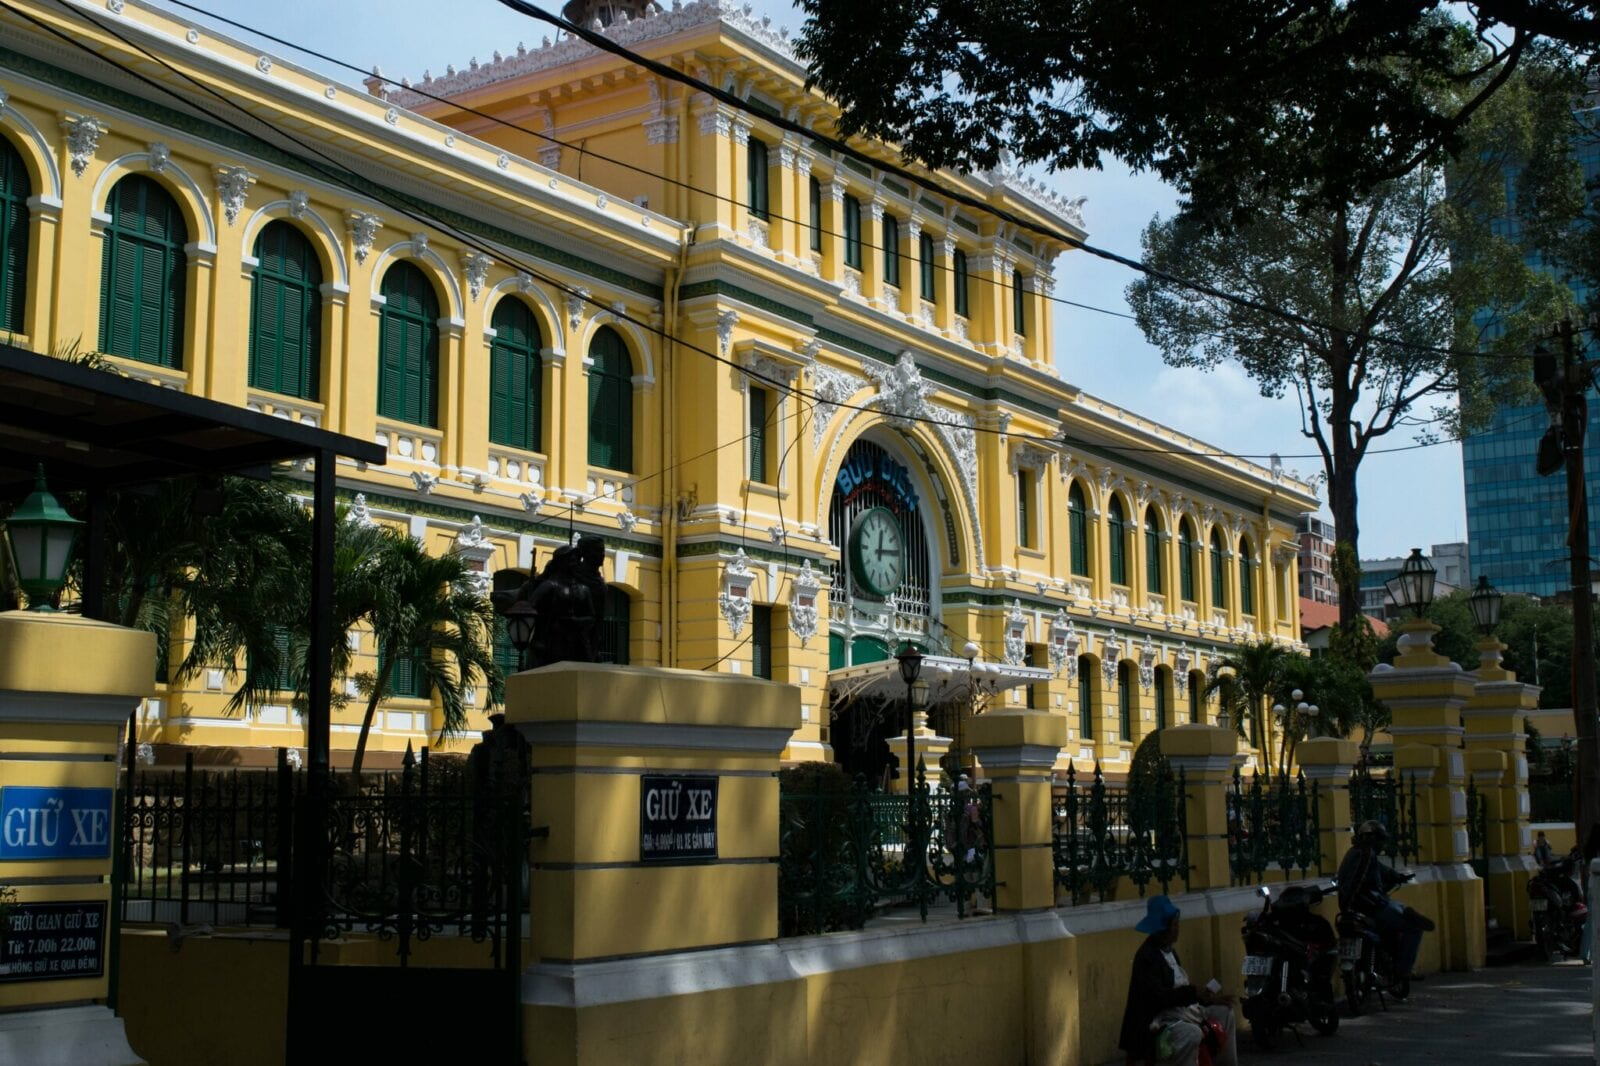 Image of the Saigon Central Post Office exterior in Vietnam